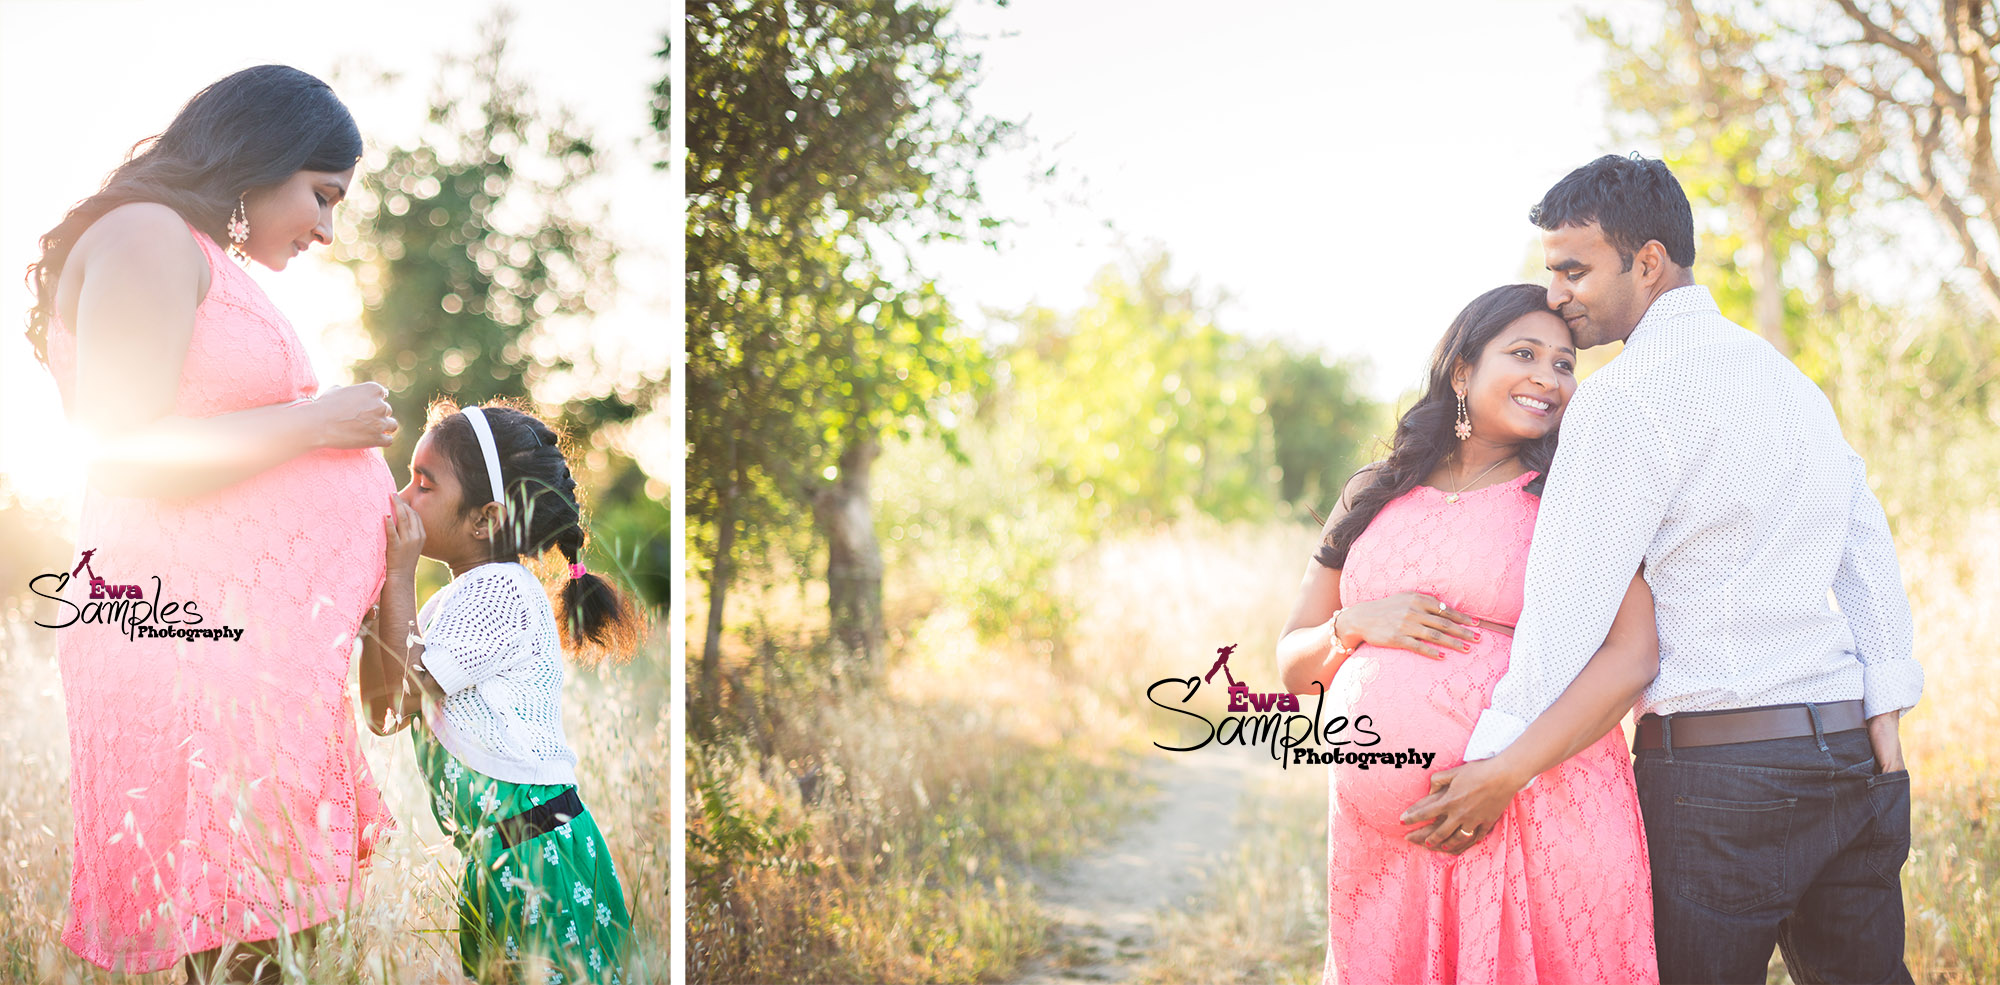 maternity_peach_dress_maternity_photography_san_jose_cupertino_bay_area_ewa_samples